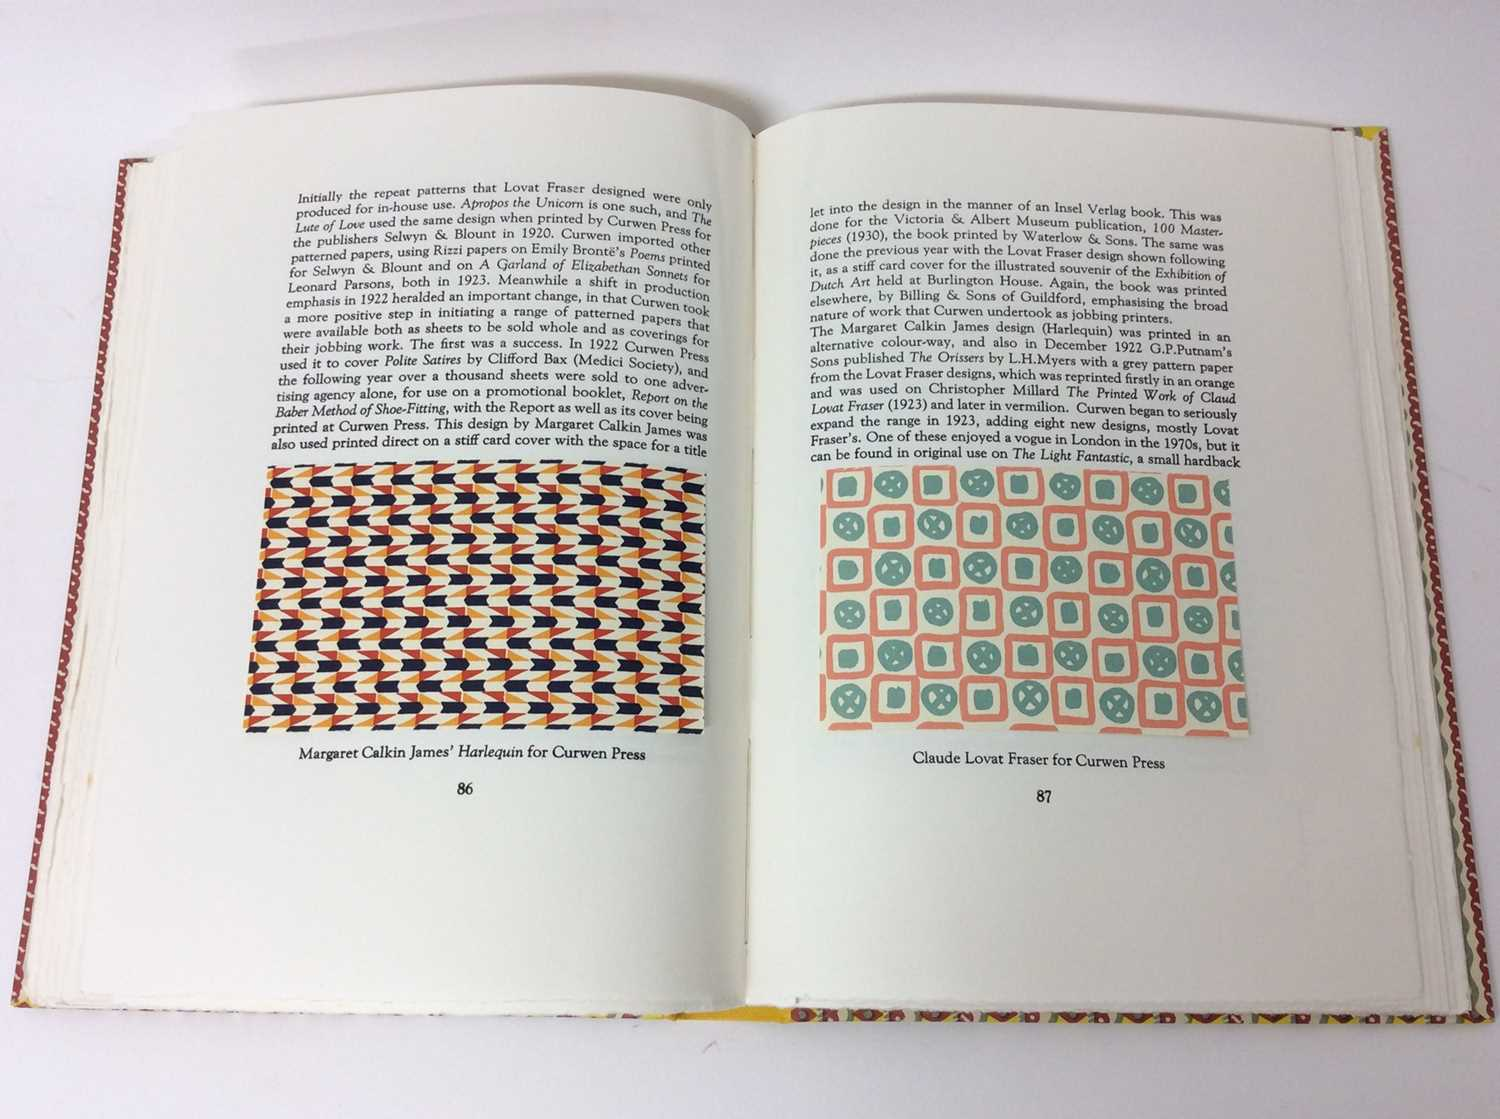 In Praise of Patterned Papers, Incline Press, 200/300 - Image 8 of 12